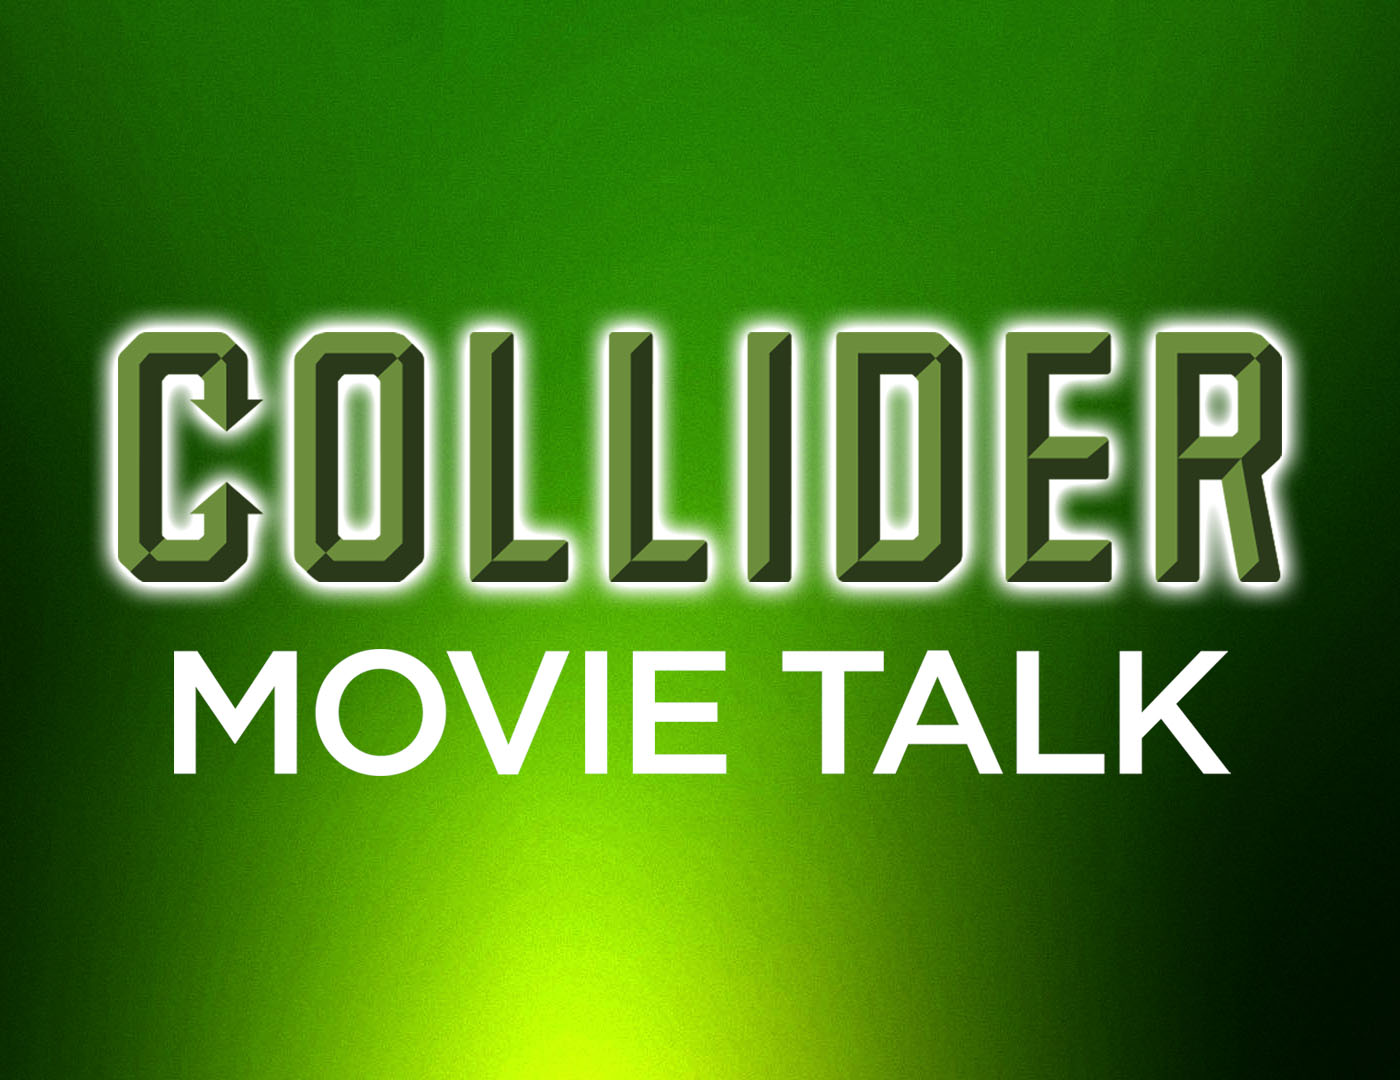 Collider Movie Talk - Pacific Rim 2 Announces New Director,  A Wrinkle In Time Names Ava Duvernay to Helm Adaptation